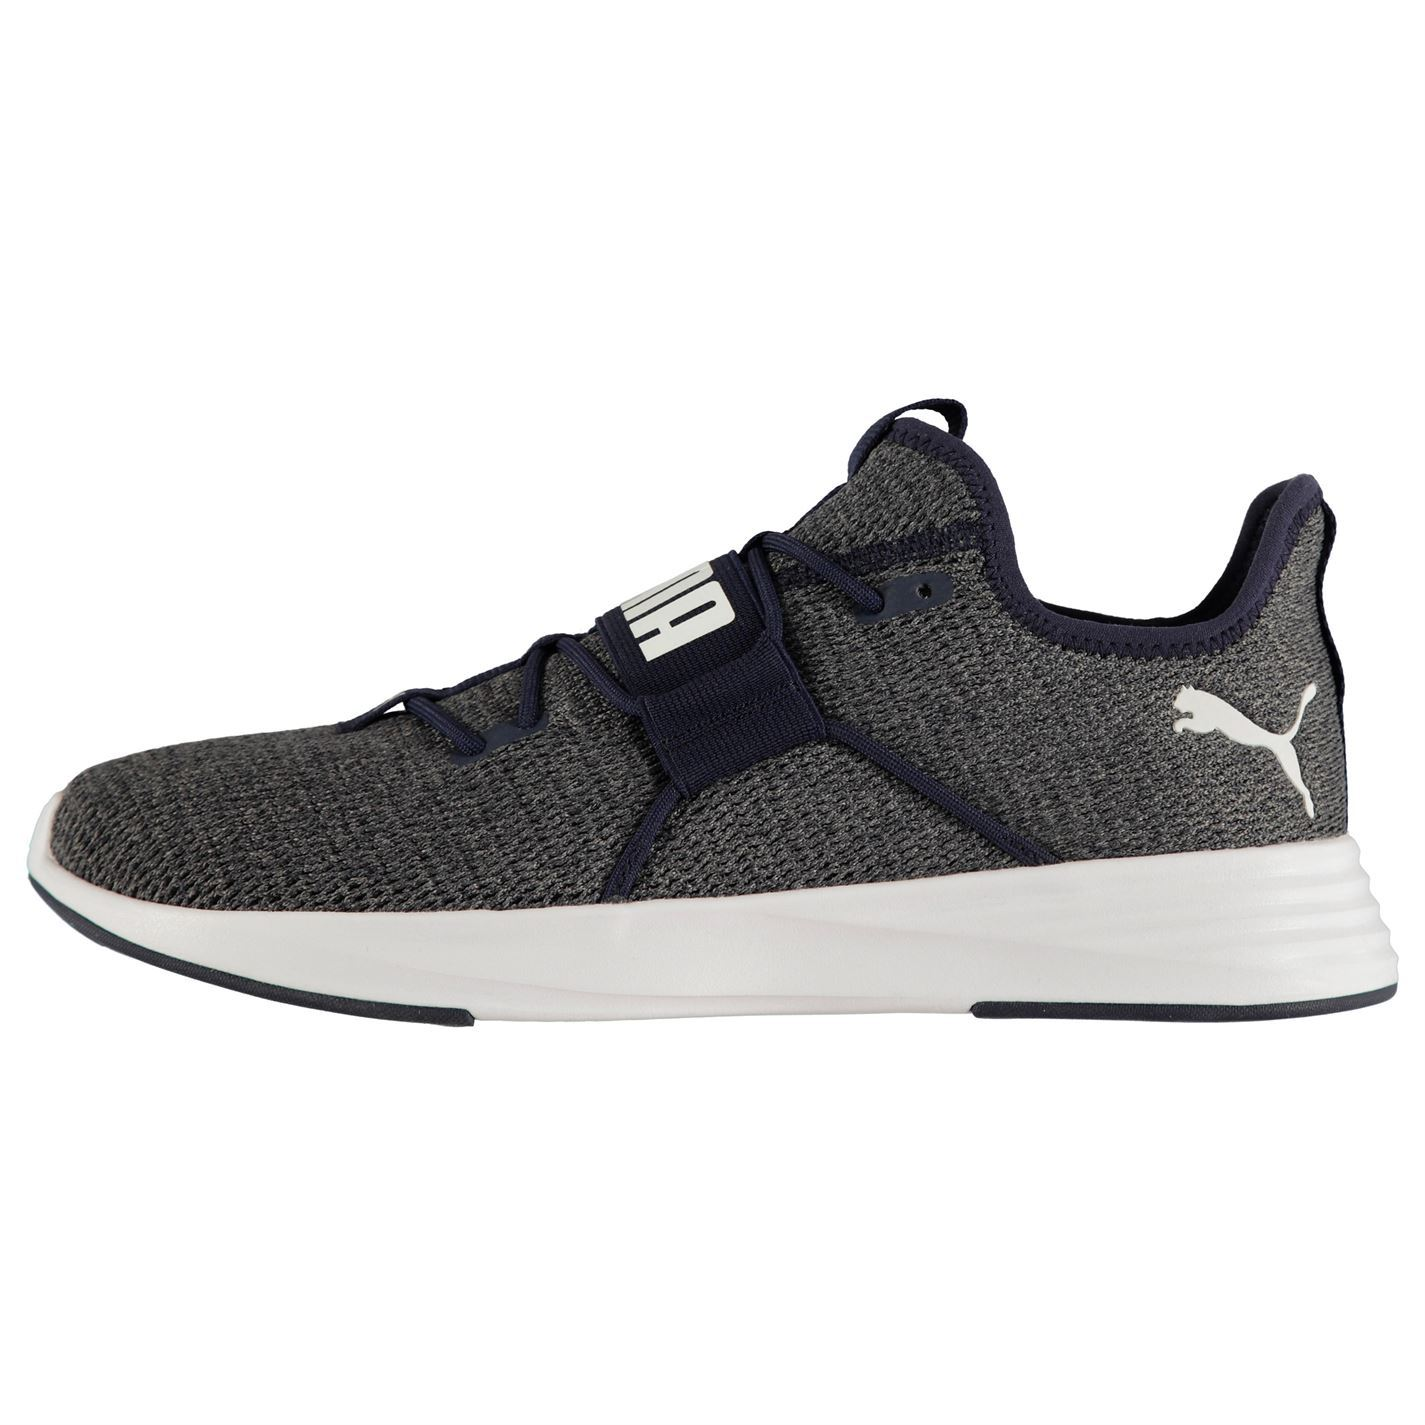 7069daecf Puma Persist XT Training Shoes Mens Gym Fitness Workout Trainers ...